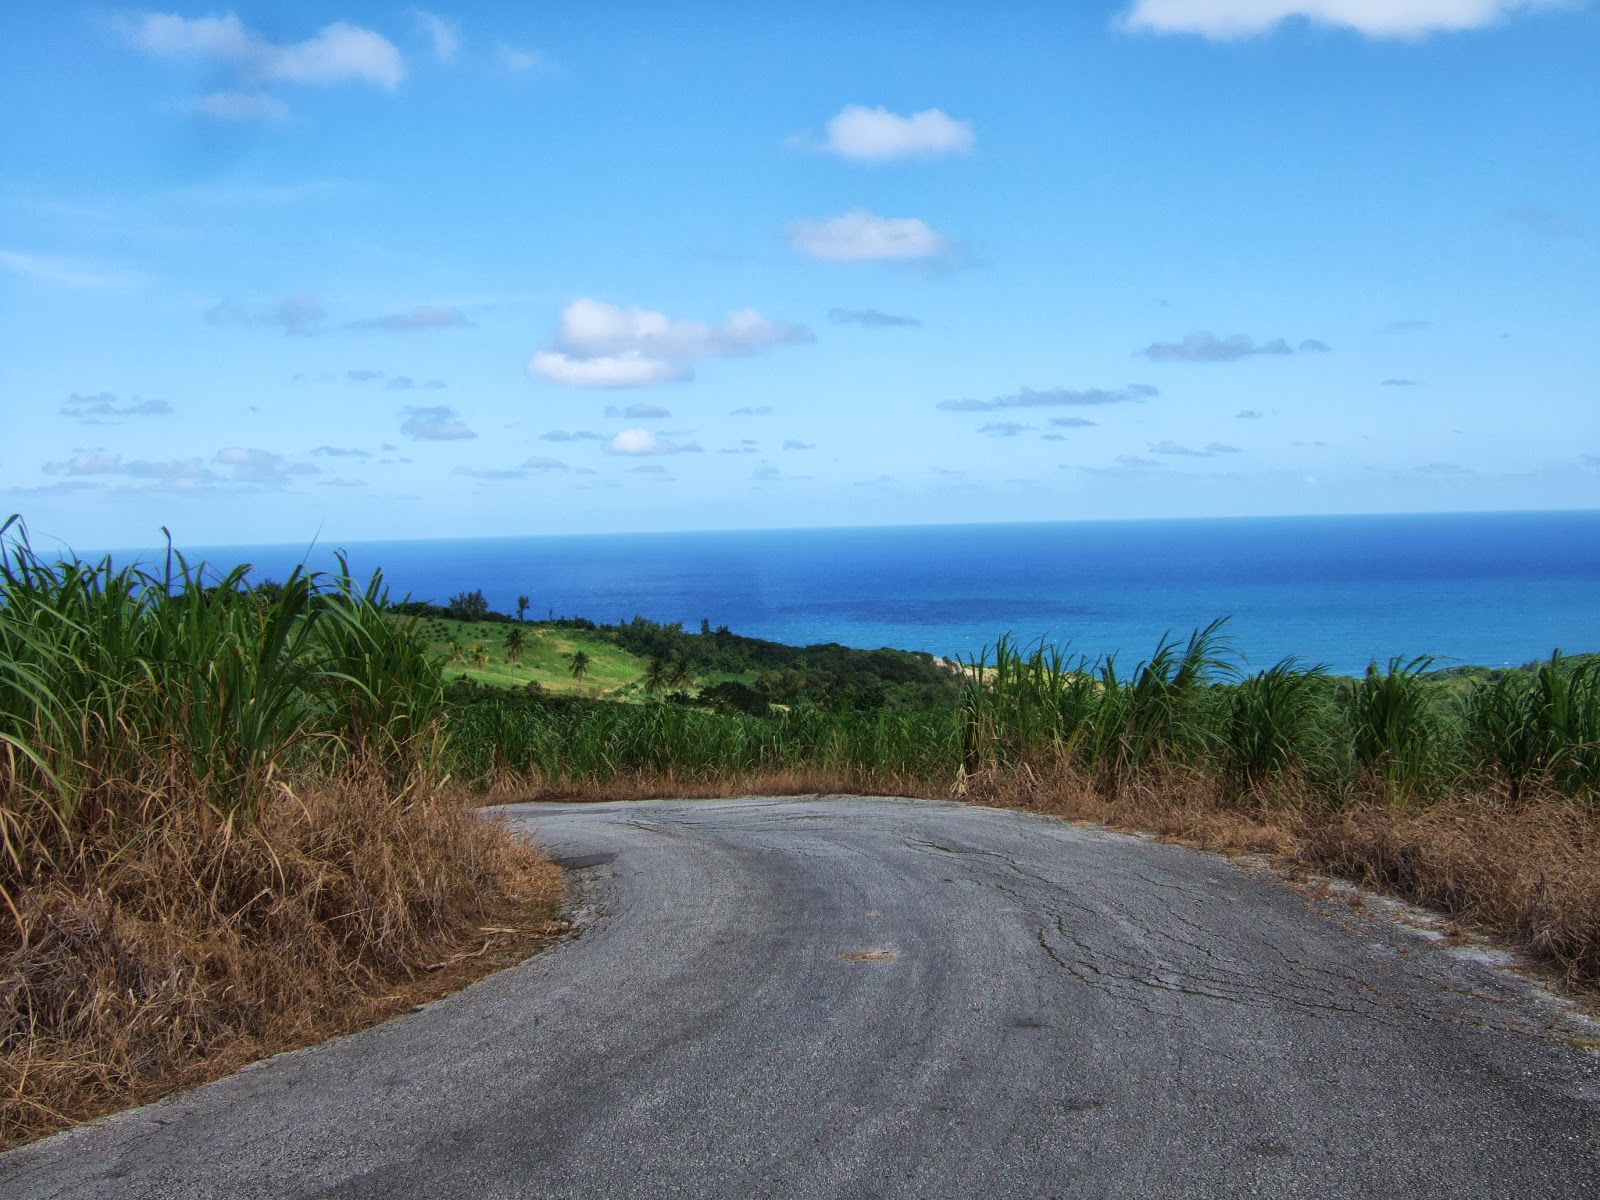 The never ending, winding roads of Barbados.